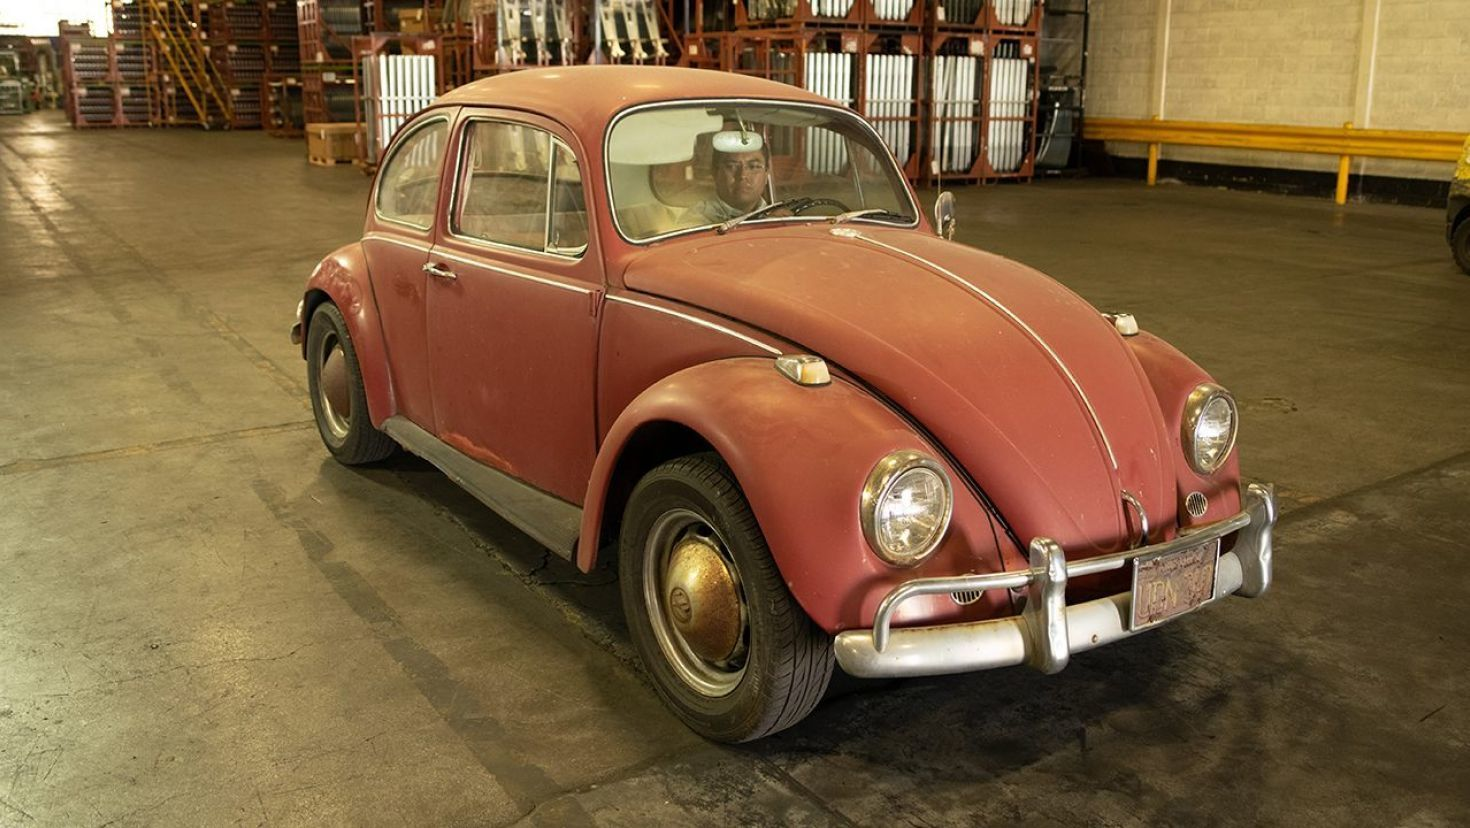 Half Century Old Vw Beetle Found And Fixed Up Vw Beetles Vw Fox